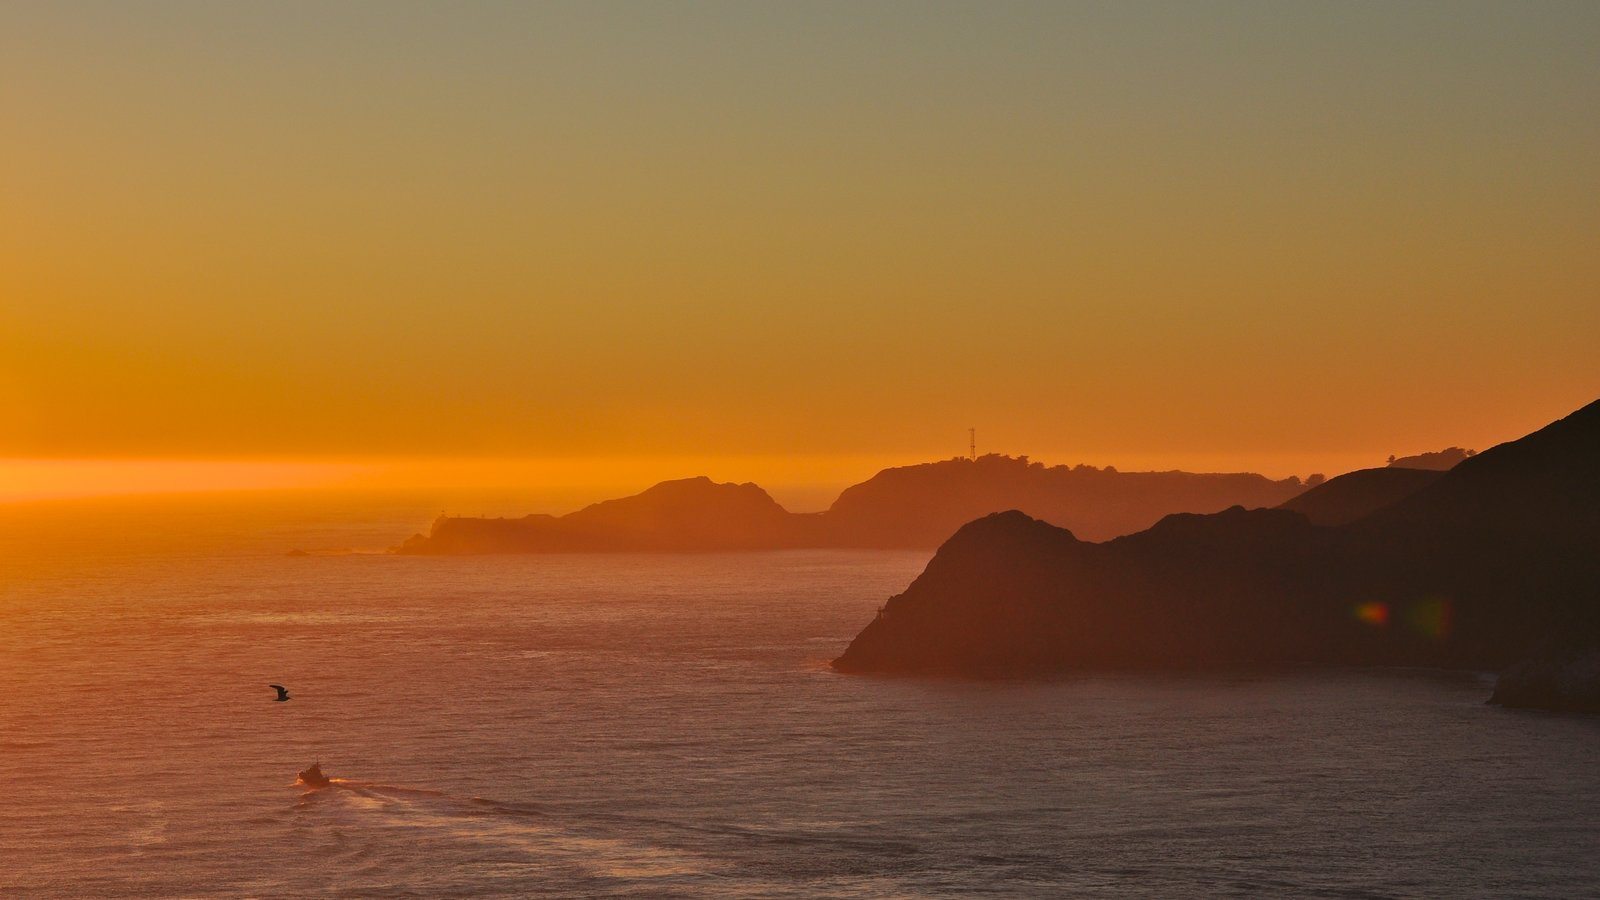 San Francisco showing landscape views, a sunset and a bay or harbor